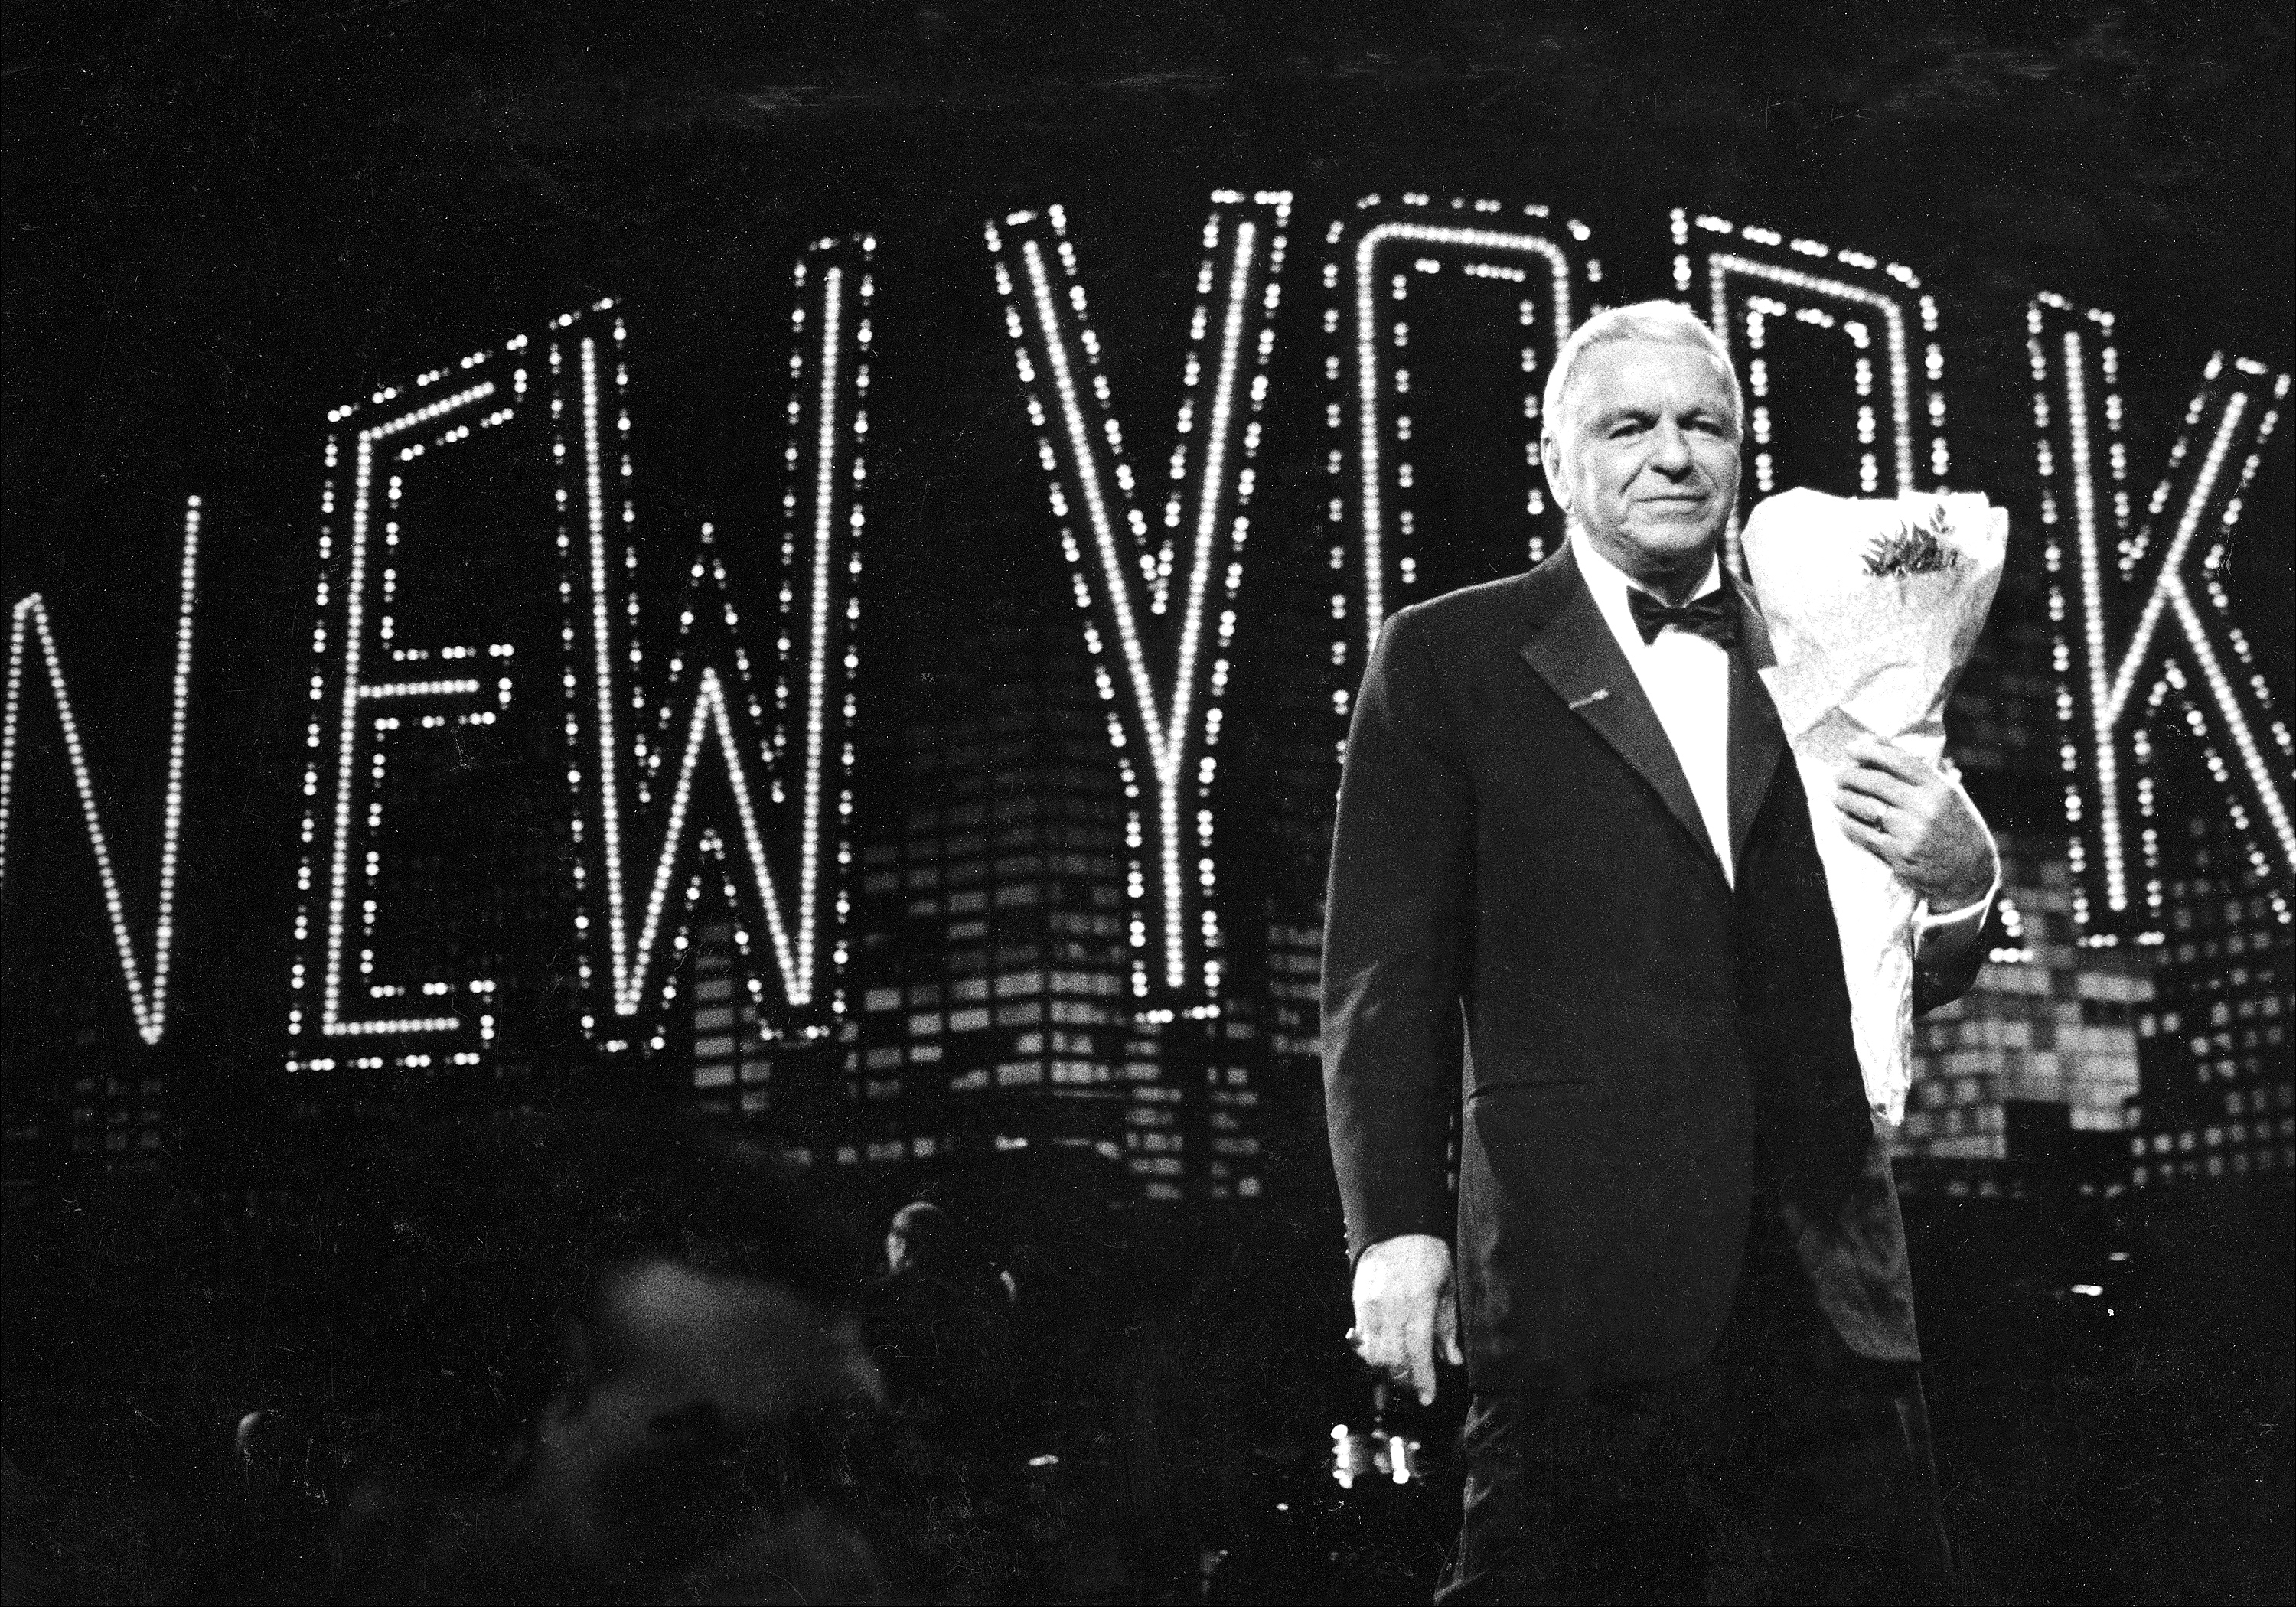 Caption: Frank Sinatra in concert at Radio City Music Hall. May 15, 1998, Credit: New York Daily News Archive /Getty